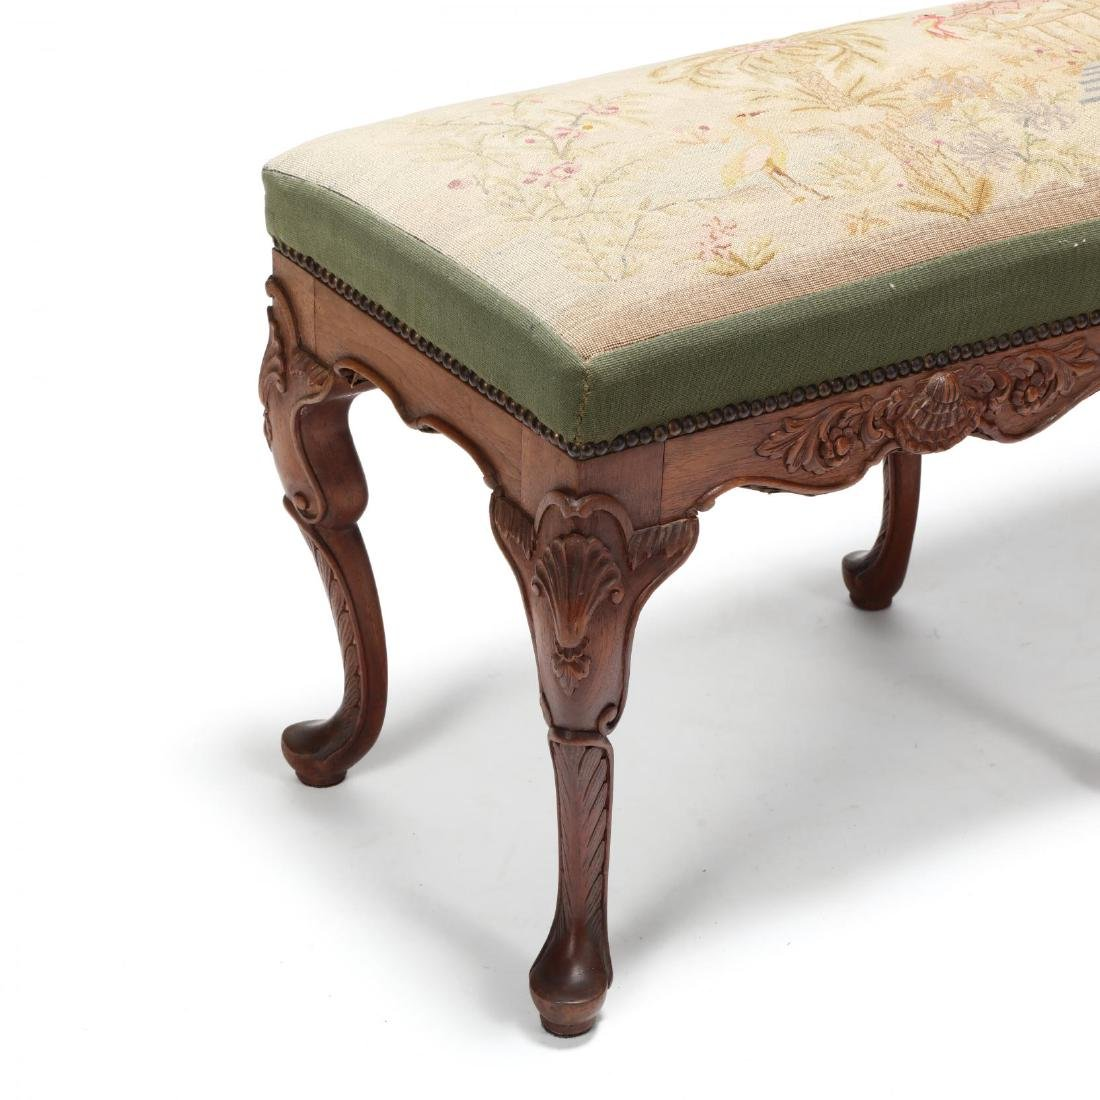 Queen Anne Style Carved Mahogany Bench - 3